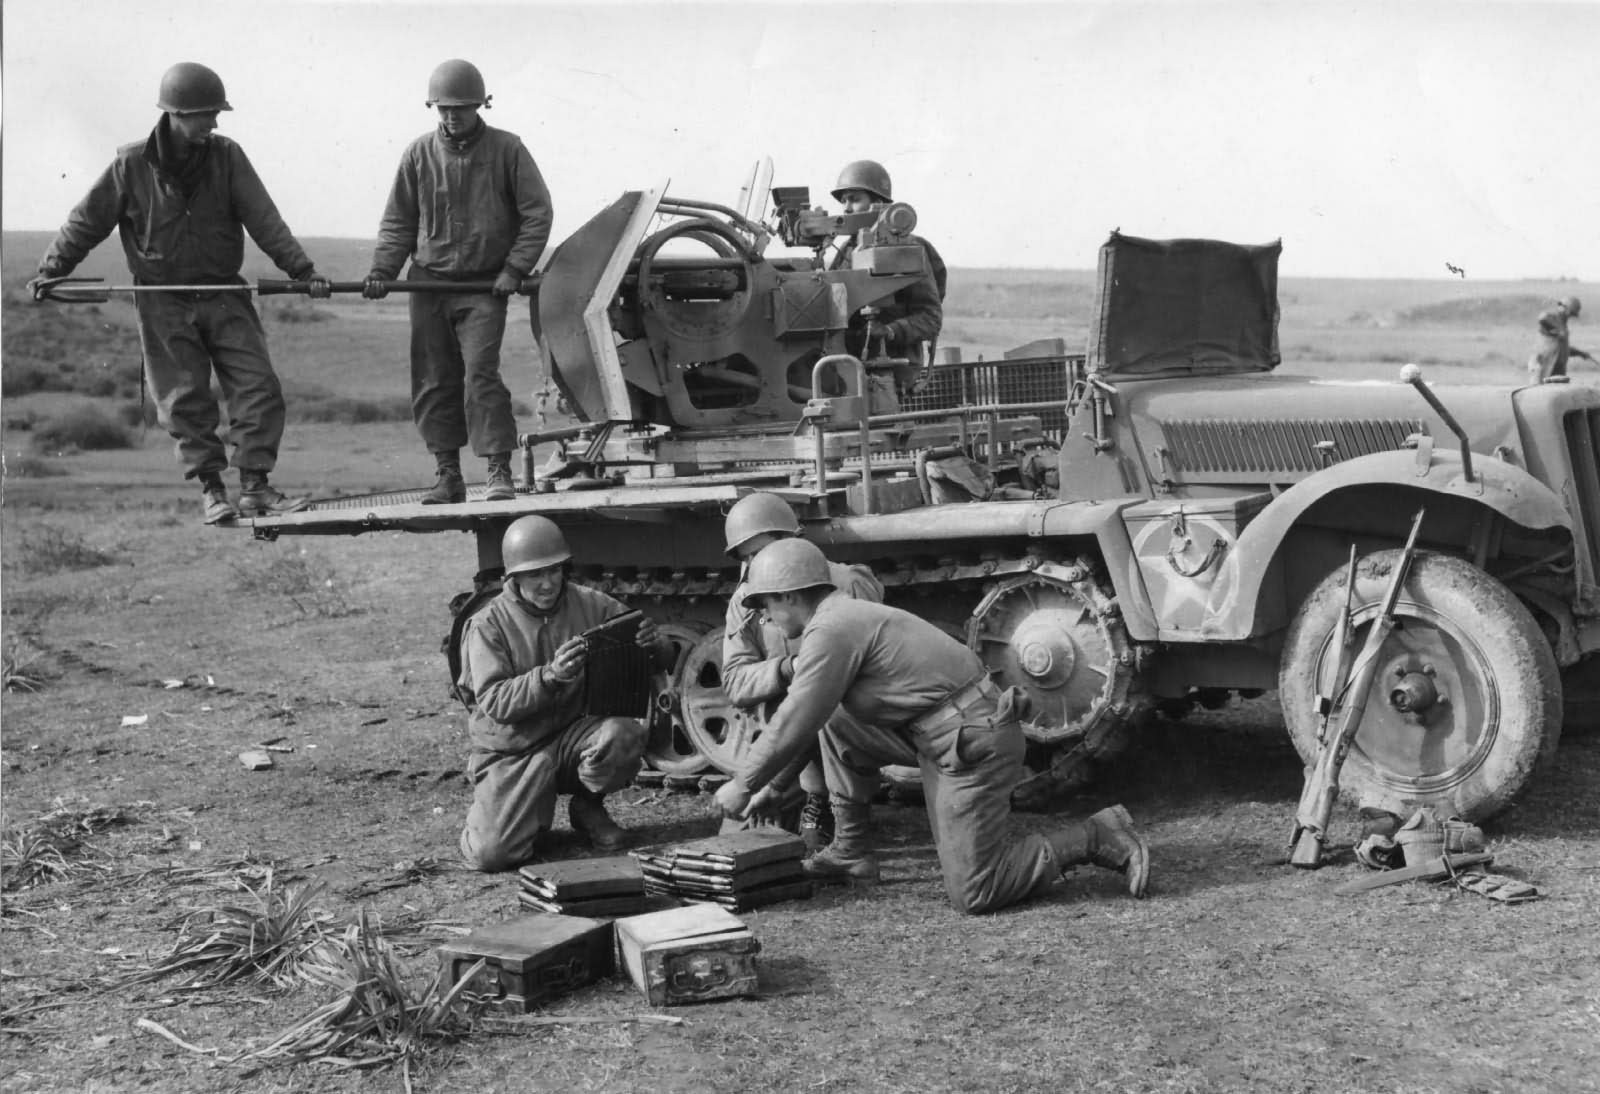 SdKfz 10/5 flak and US soldiers